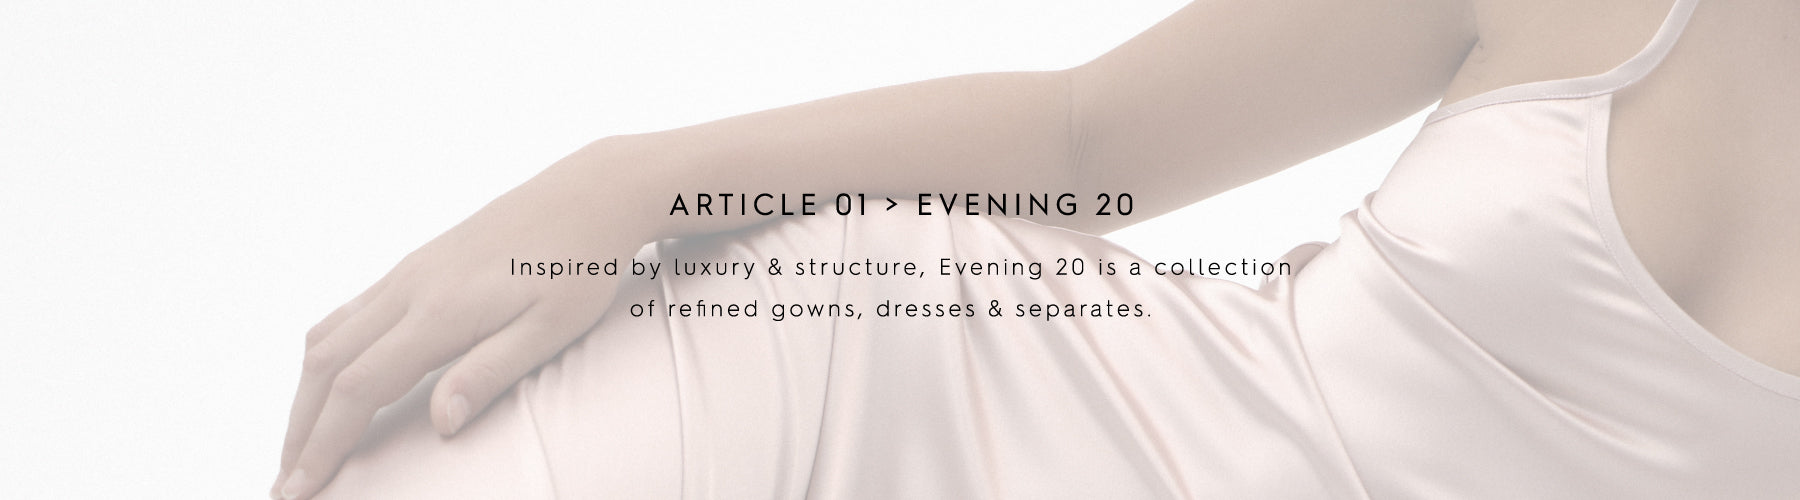 Article01 - Evening20